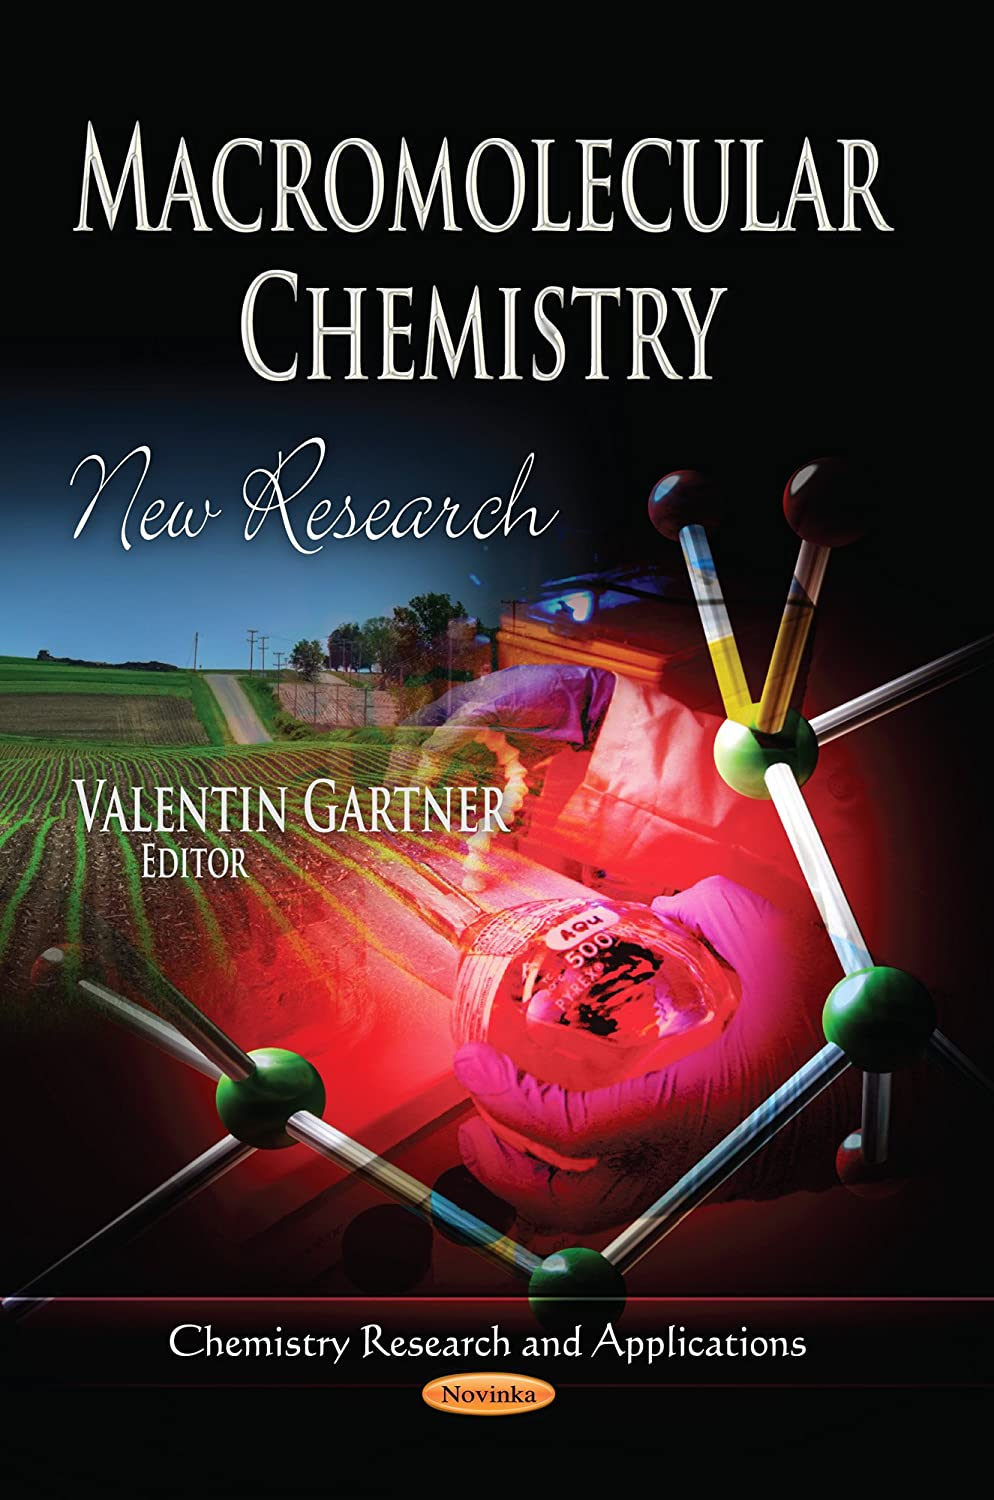 Macromolecular chemistry [electronic resource] : new research